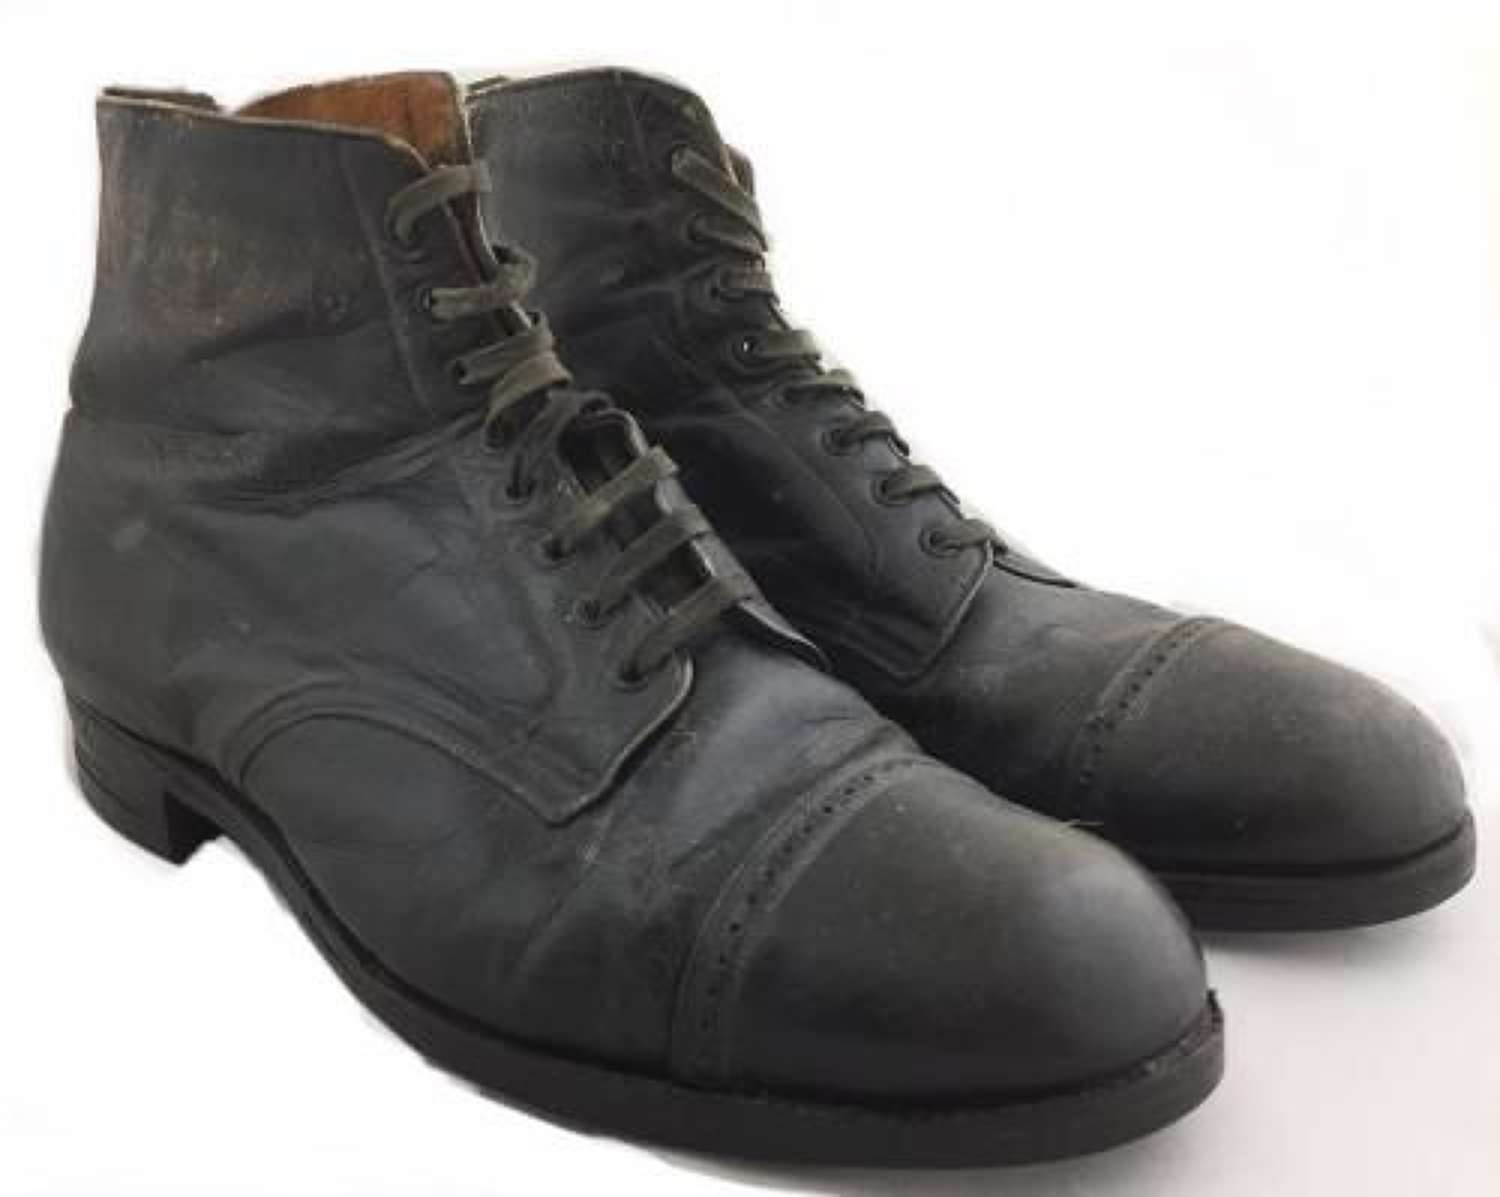 Original Edwardian / Great War Period Ankle Boots by 'Grenson'